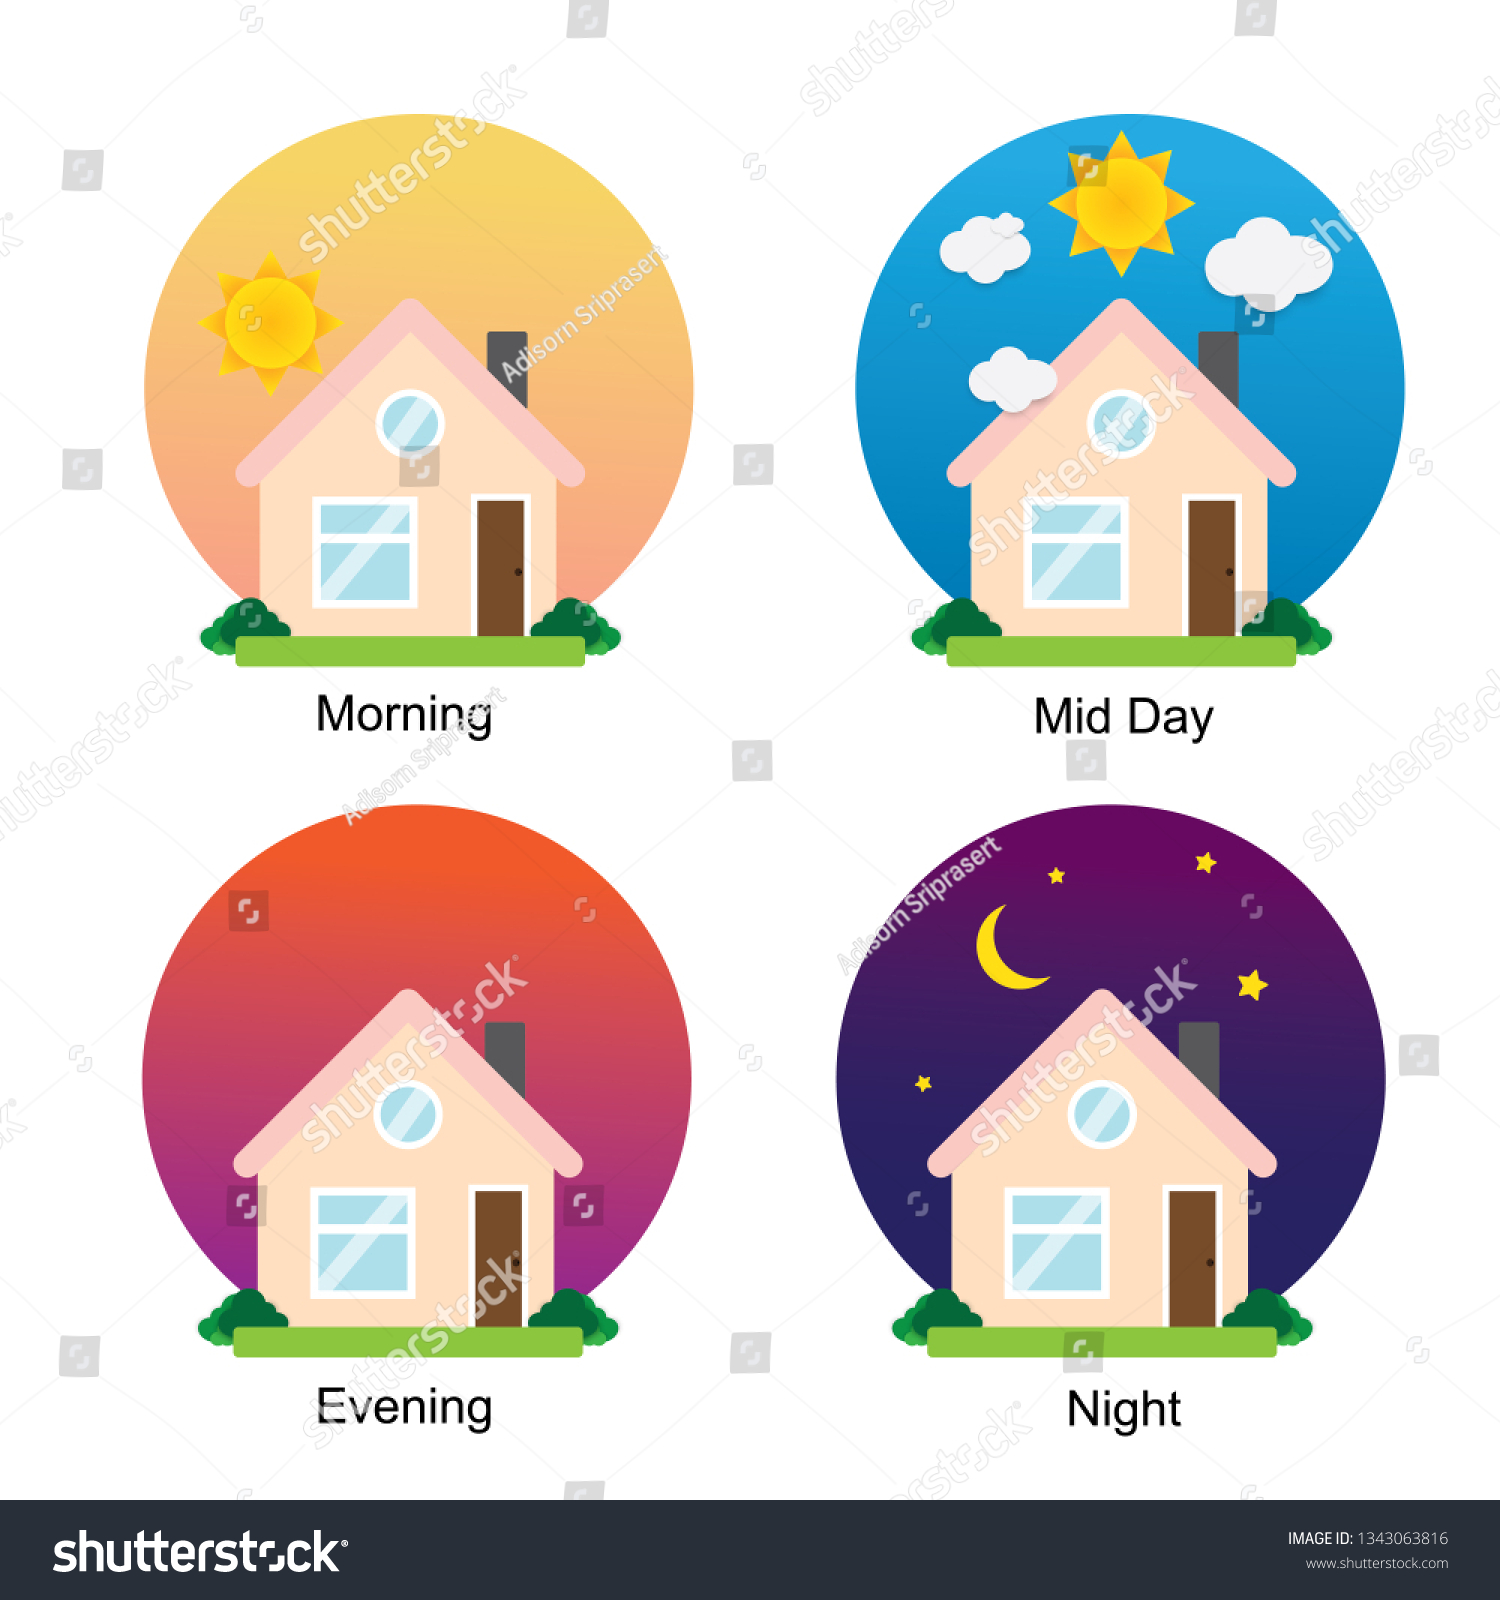 Different times of the day.Good morning, good afternoon, Good evening, Good night, day and night, Times of day, 4 times for people routine.